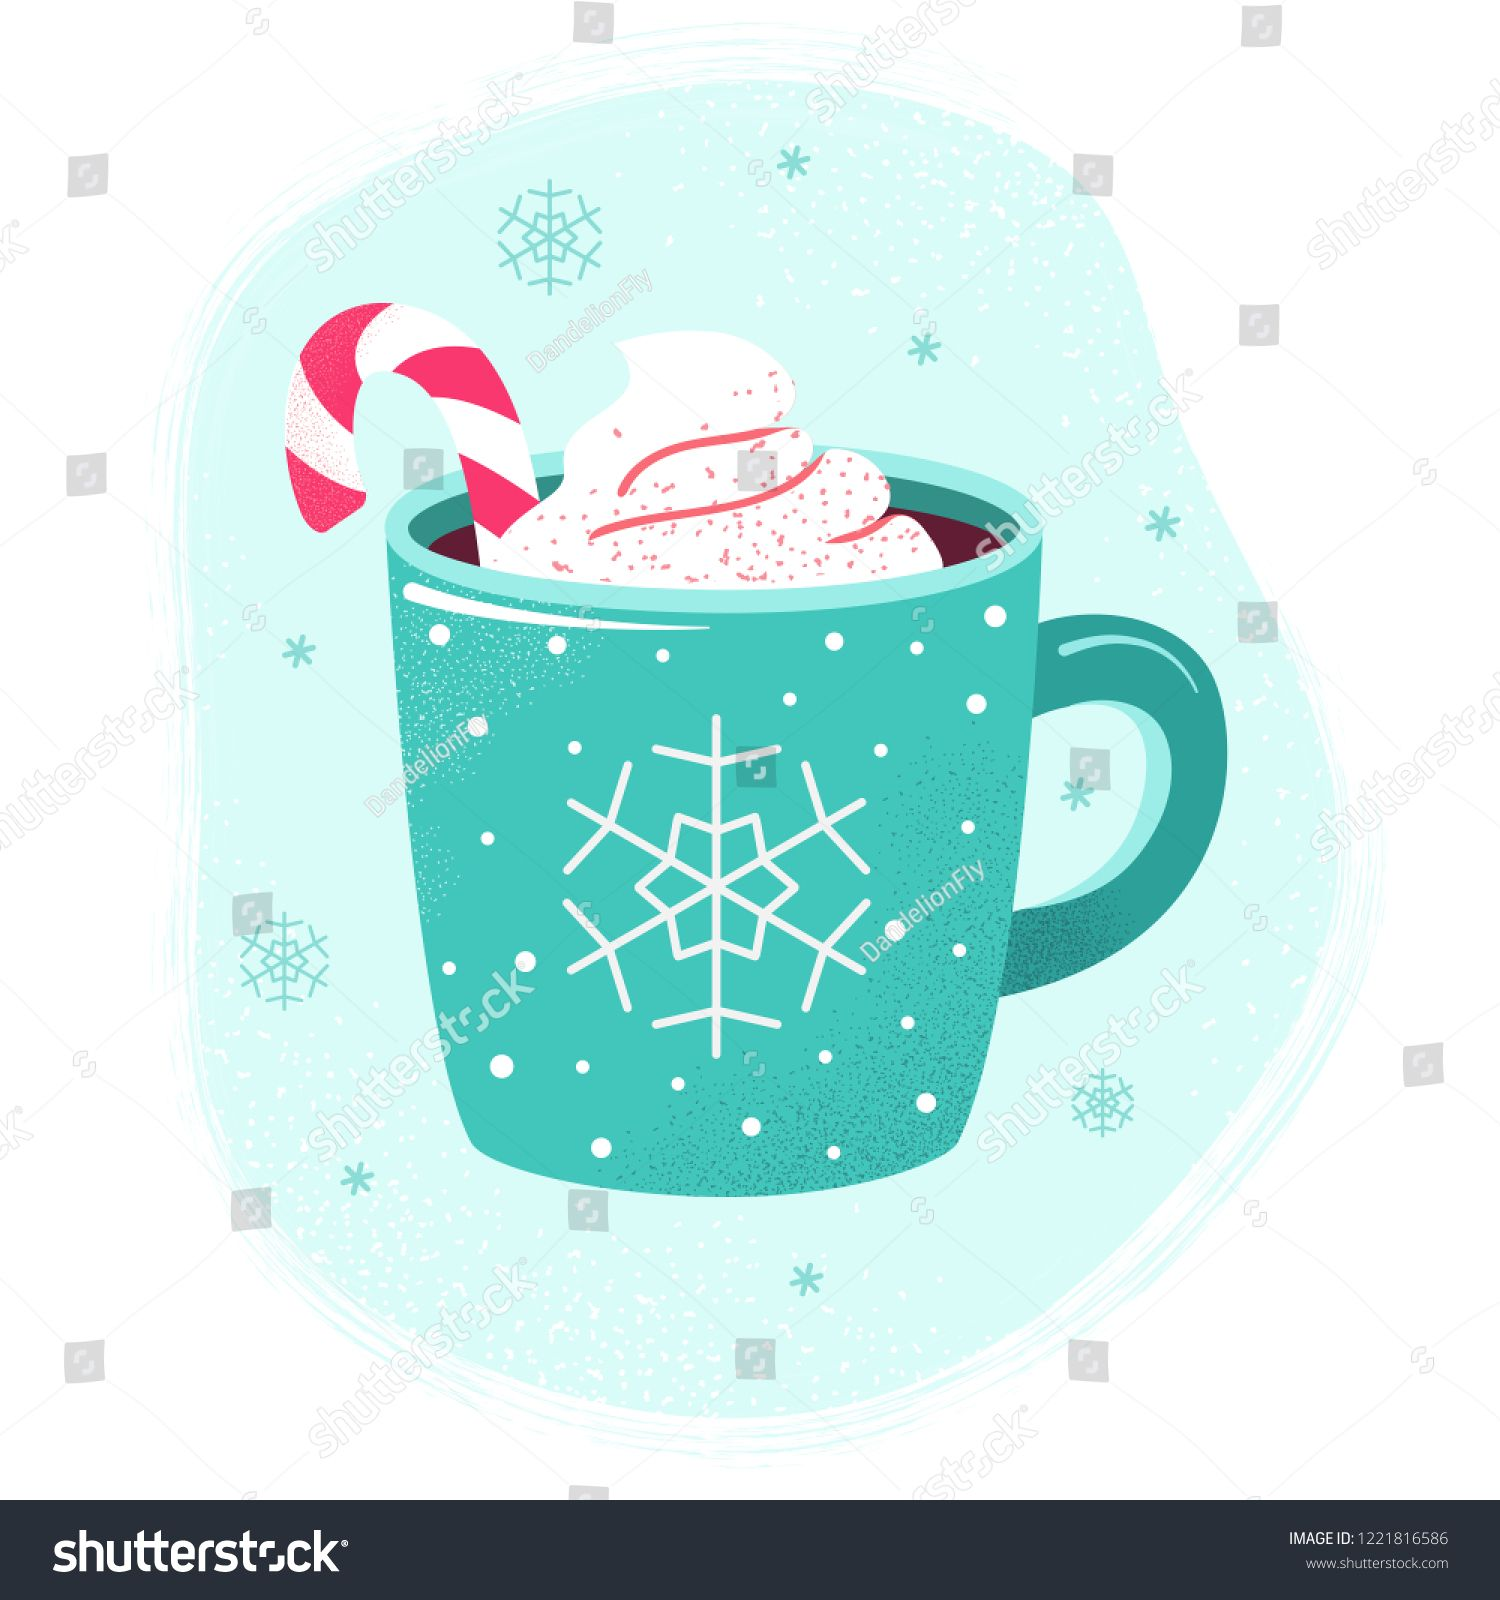 Winter cup of hot chocolate or hot cocoa with marshmallows and snowflake ornament. Blue mug with coffee, christmas candy and cream. Flat design elements. Winter season illustration. ,